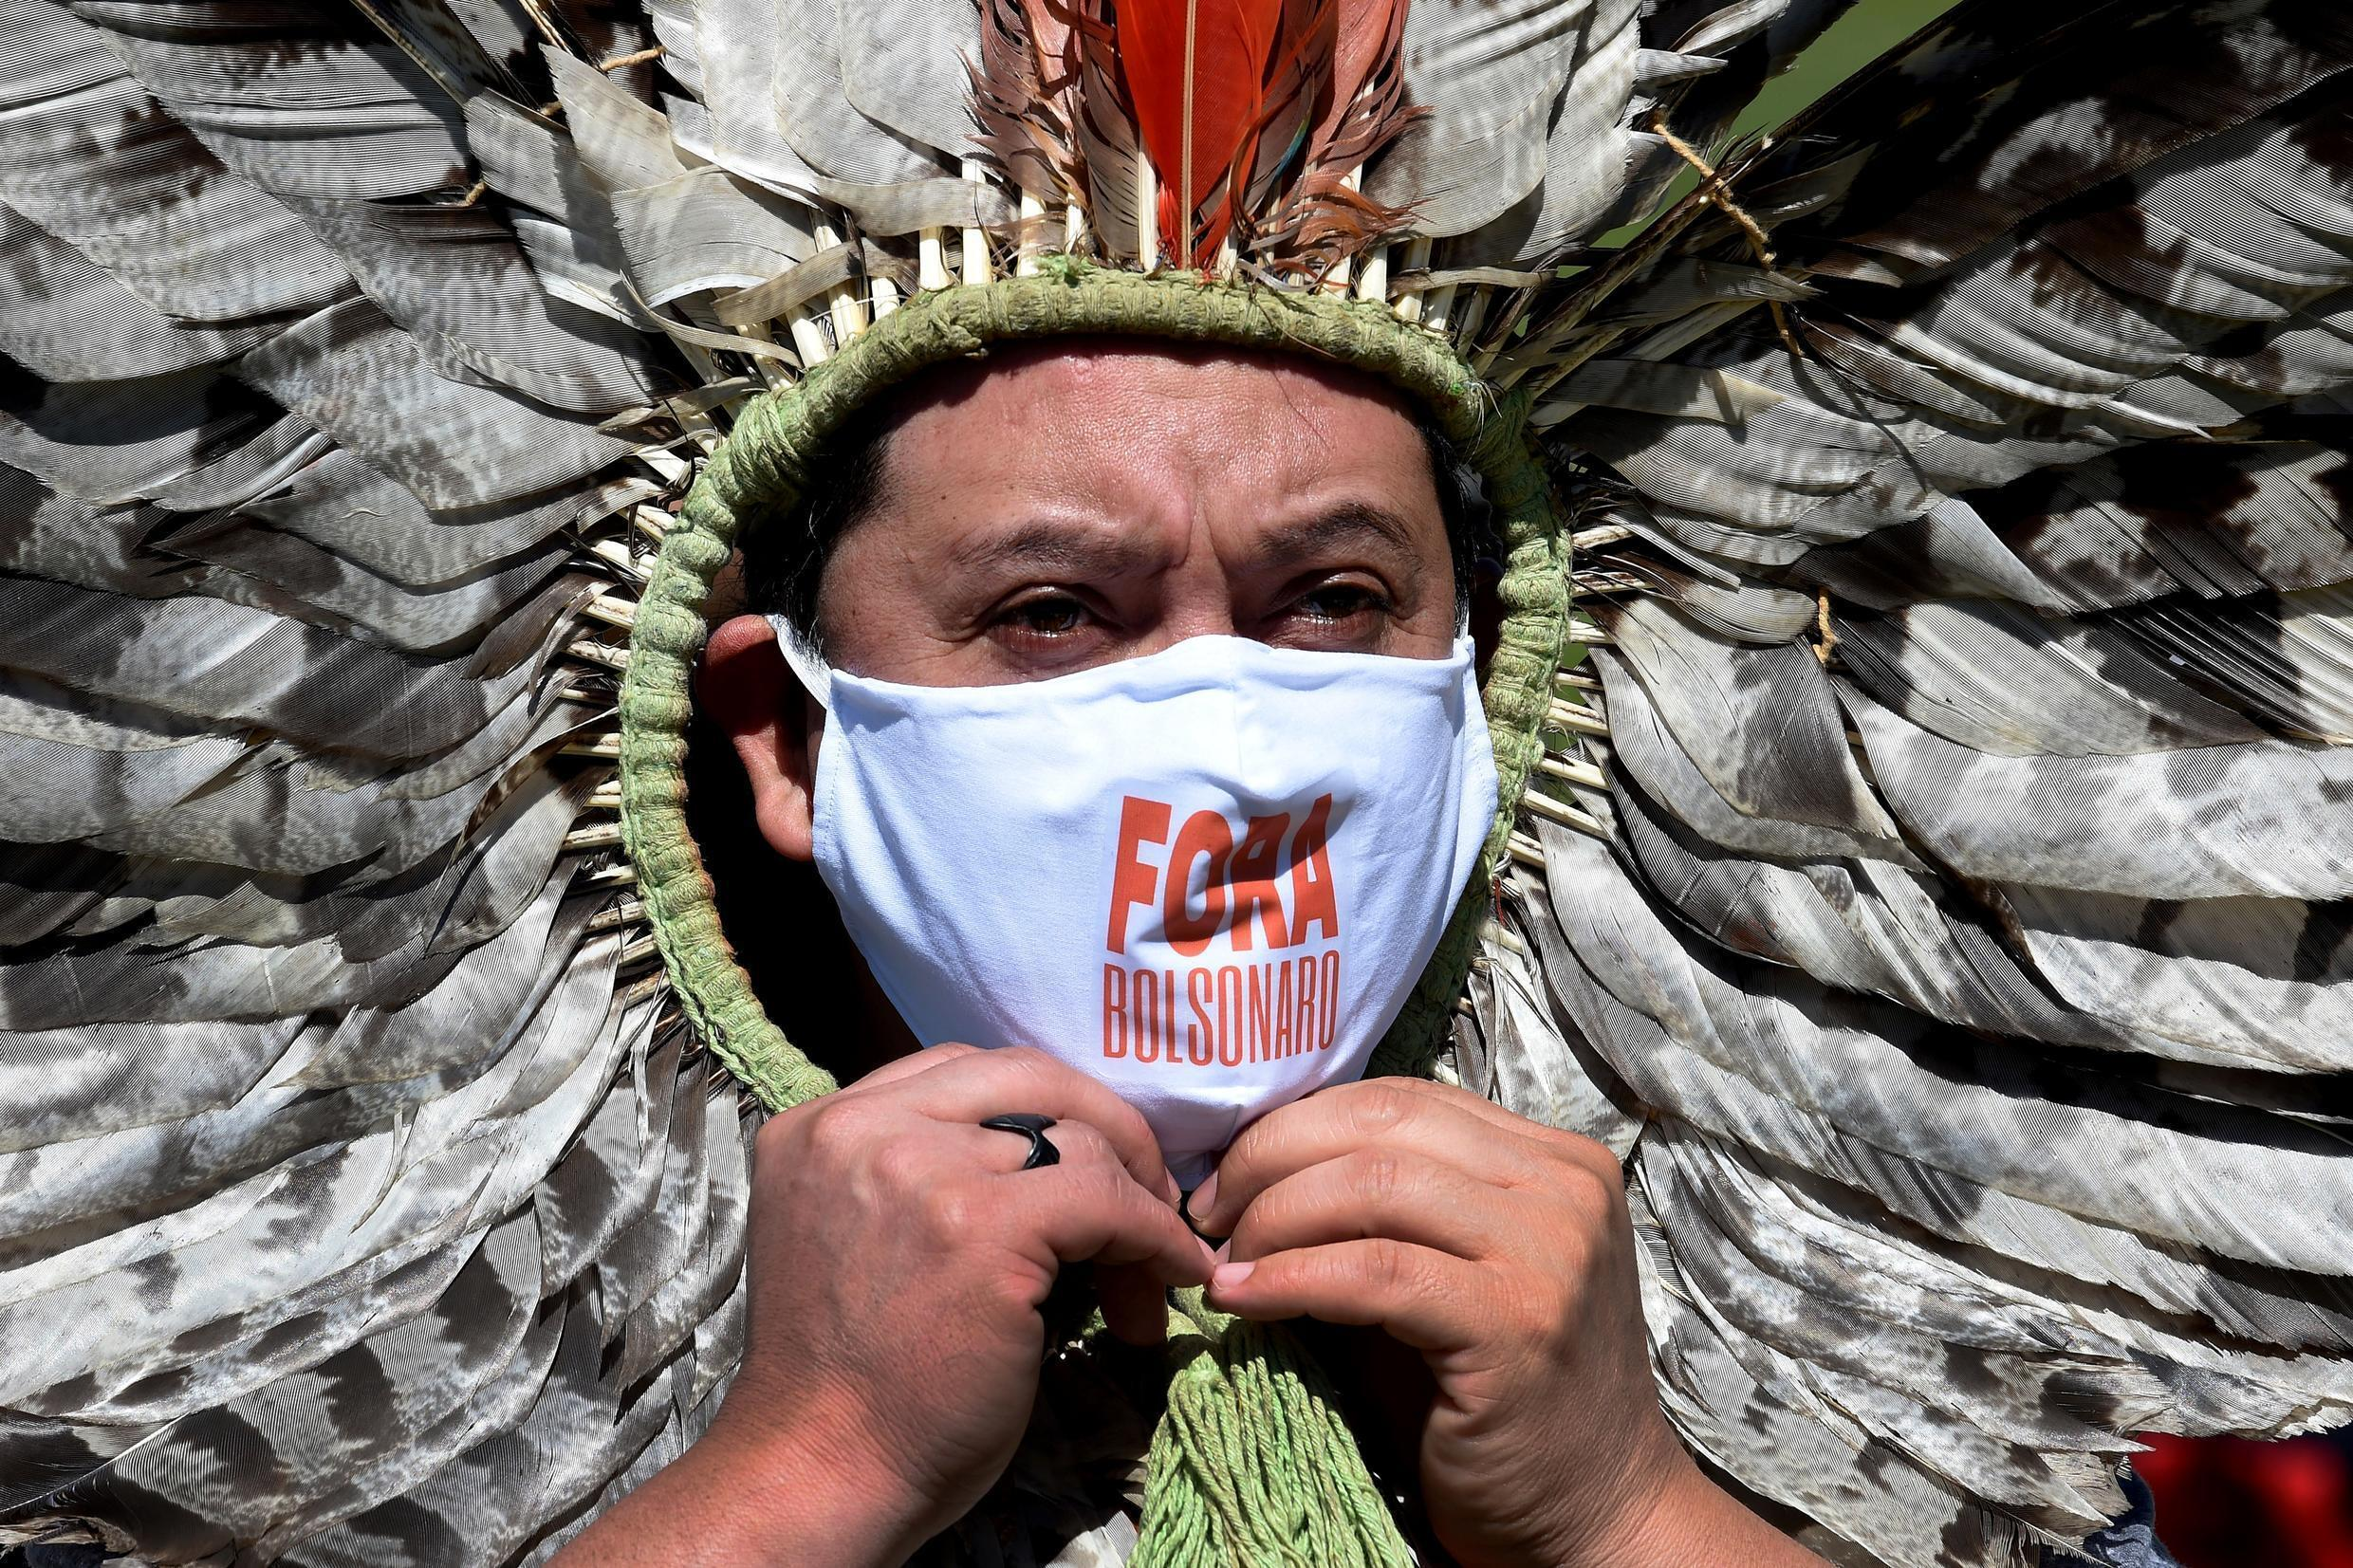 Indigenous Kaingang leader Kretan Kaingang marches in protest against President Jair Bolsonaro as Brazil's COVID-19 death toll reaches new heights